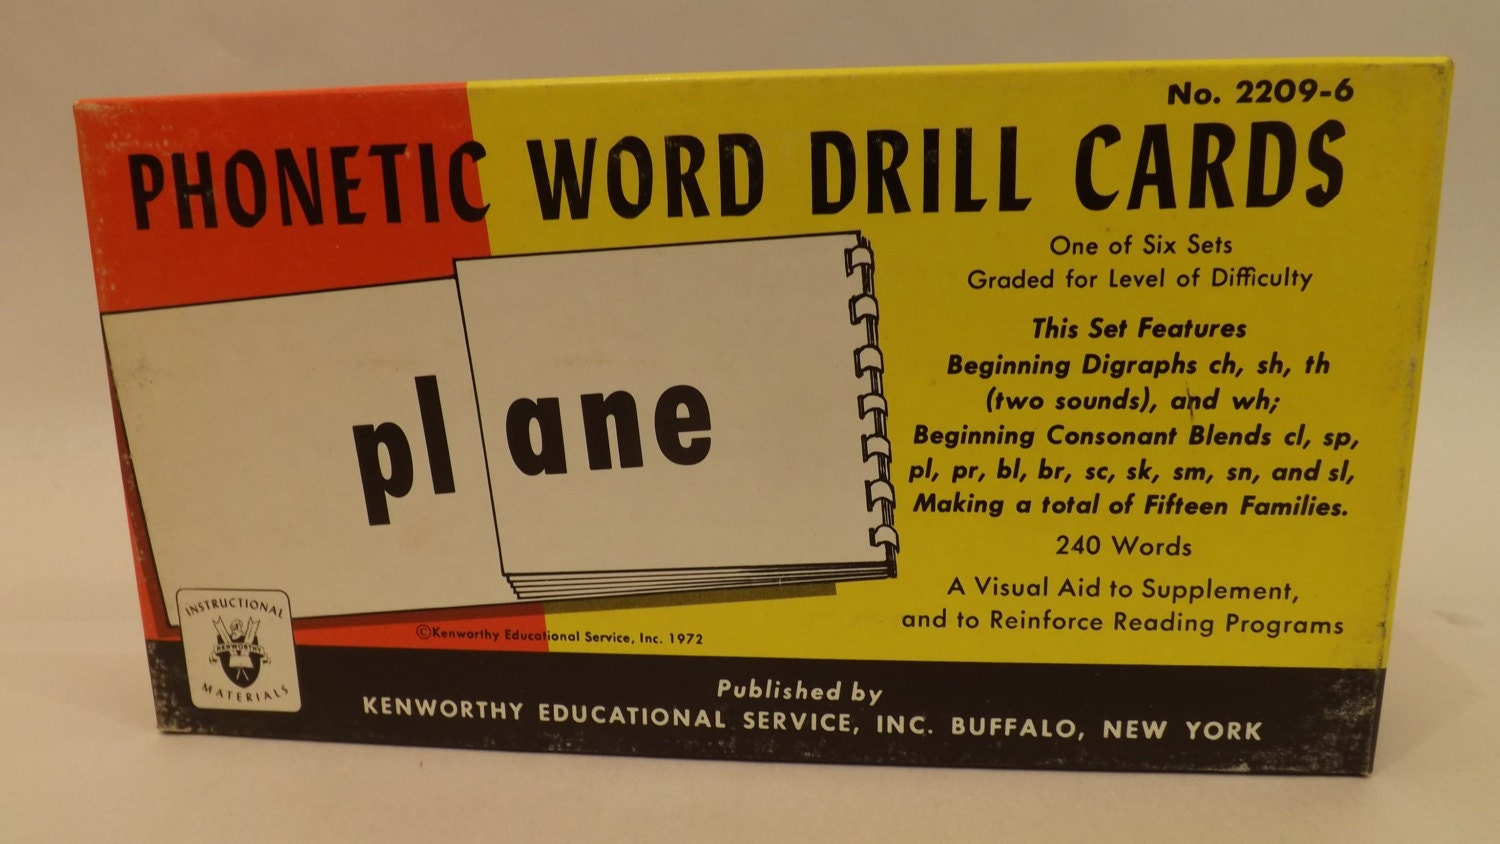 Vintage NOS Phonetic Word Drill Reading Flash Cards Beginning  Diagrams,ch-sh-th etc by Kenworthy Eductional Service 1972 # T-208-10